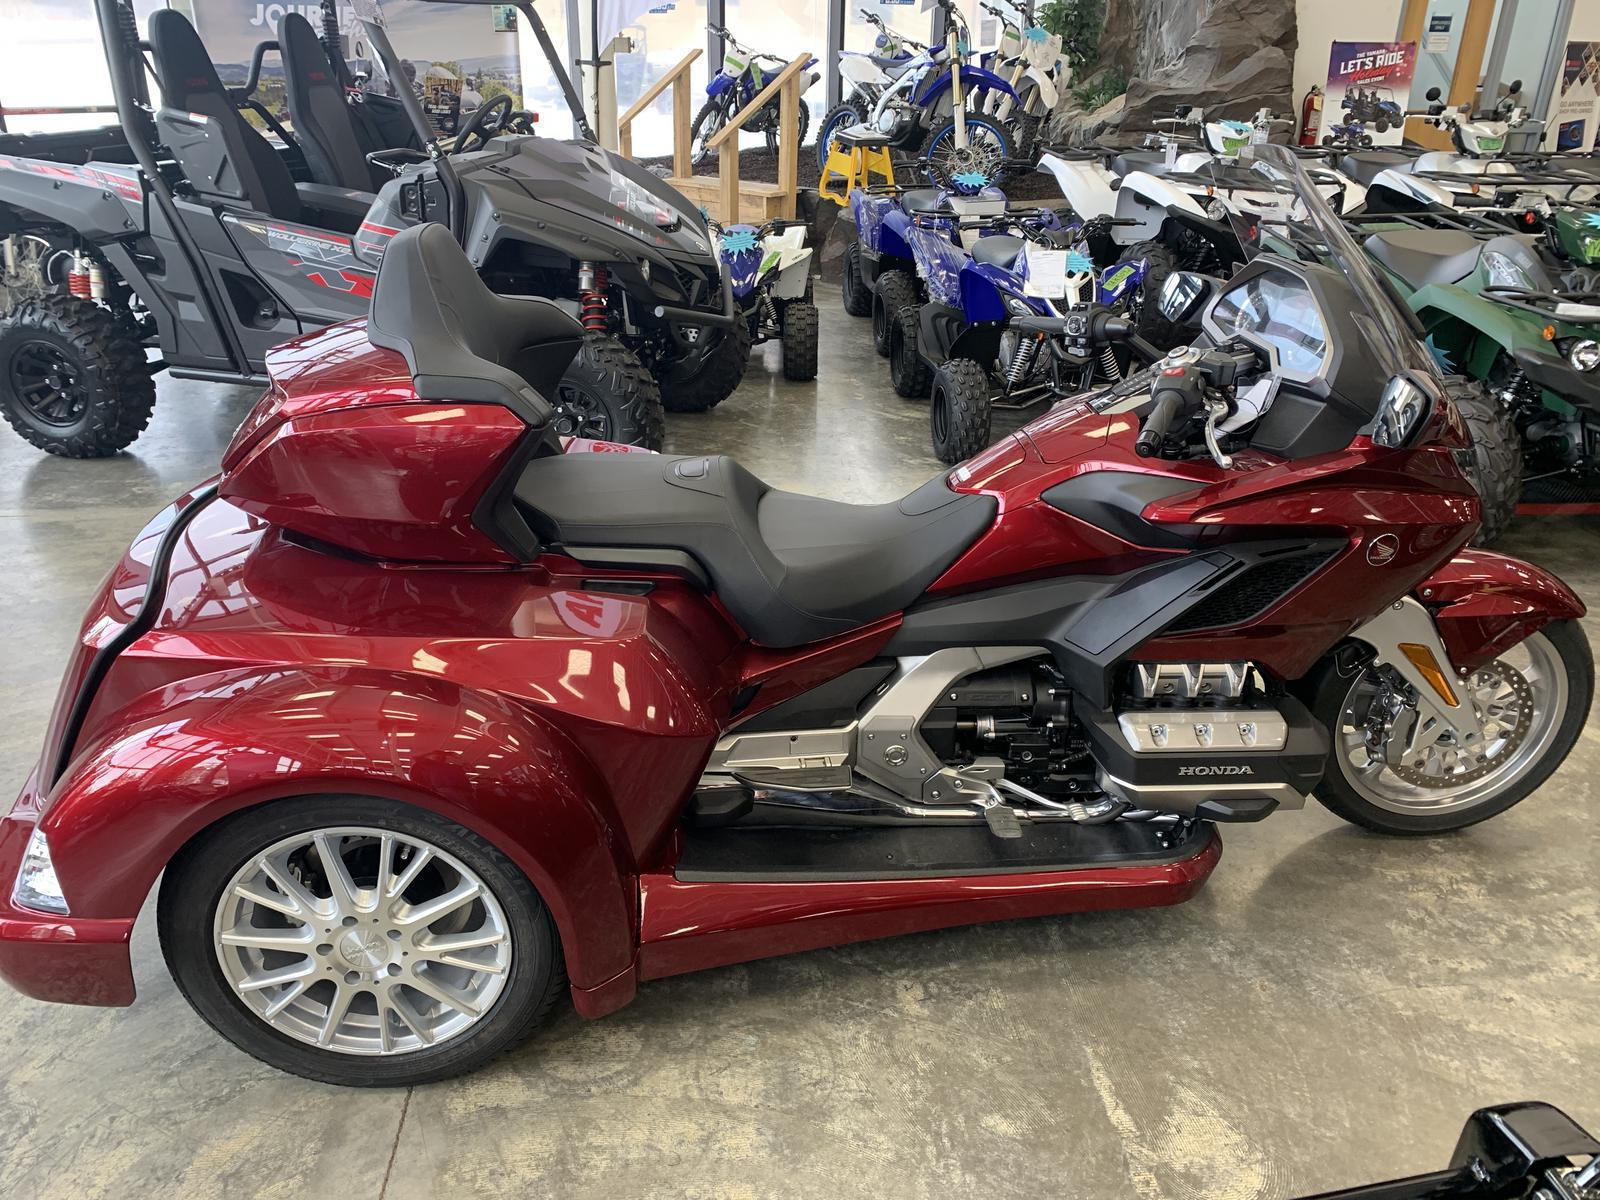 2019 Honda Gold Wing 1800 Tour Trike For Sale In White Bear Lake Mn Tousley Motorsports White Bear Lake Mn 800 Tousley